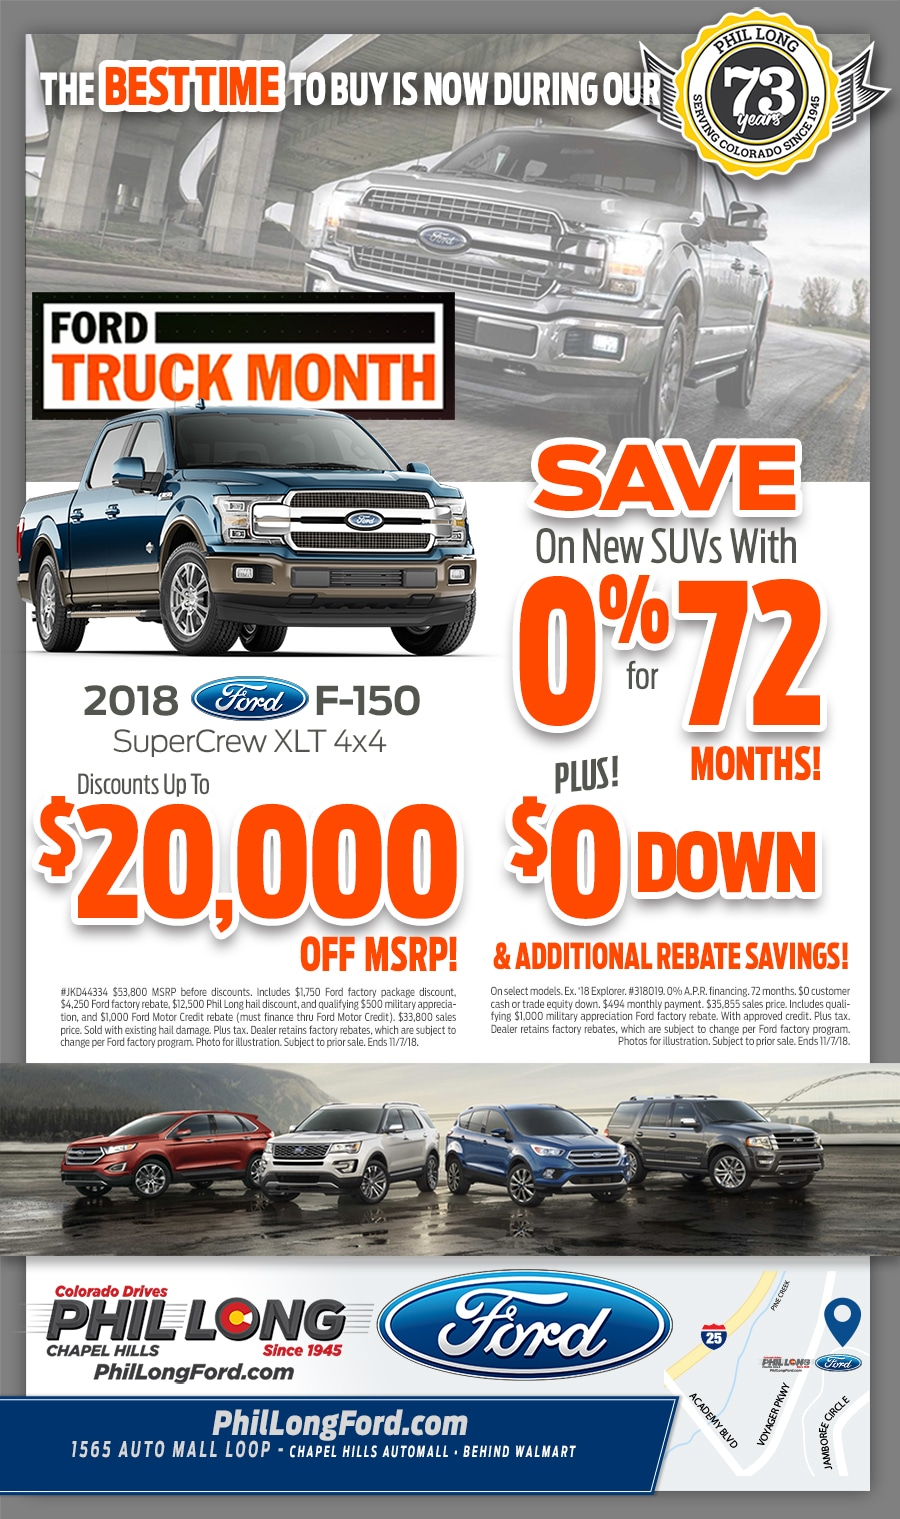 New Ford deals and specials in Colorado Springs at Phil Long Ford Chapel Hills